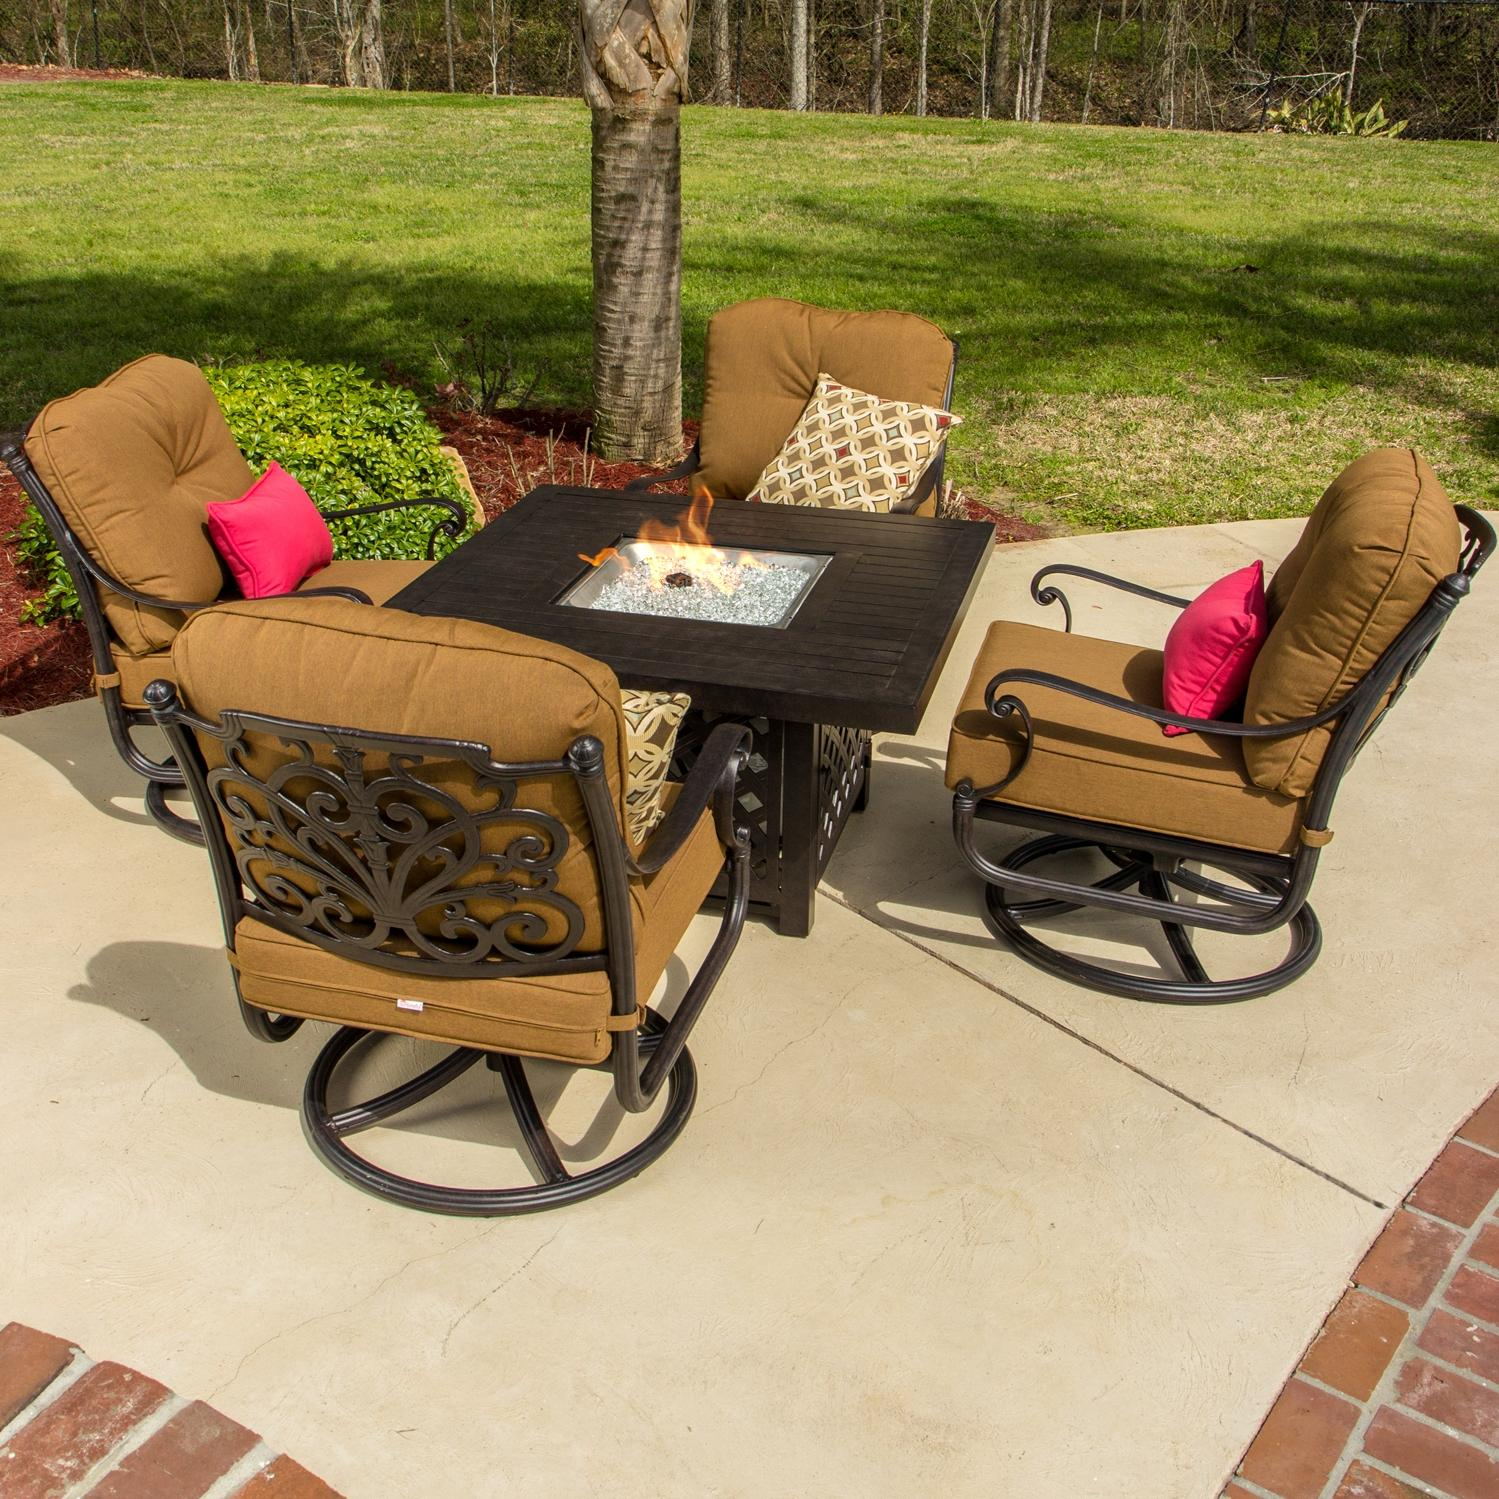 Patio Outdoor Furniture Set with Fire table